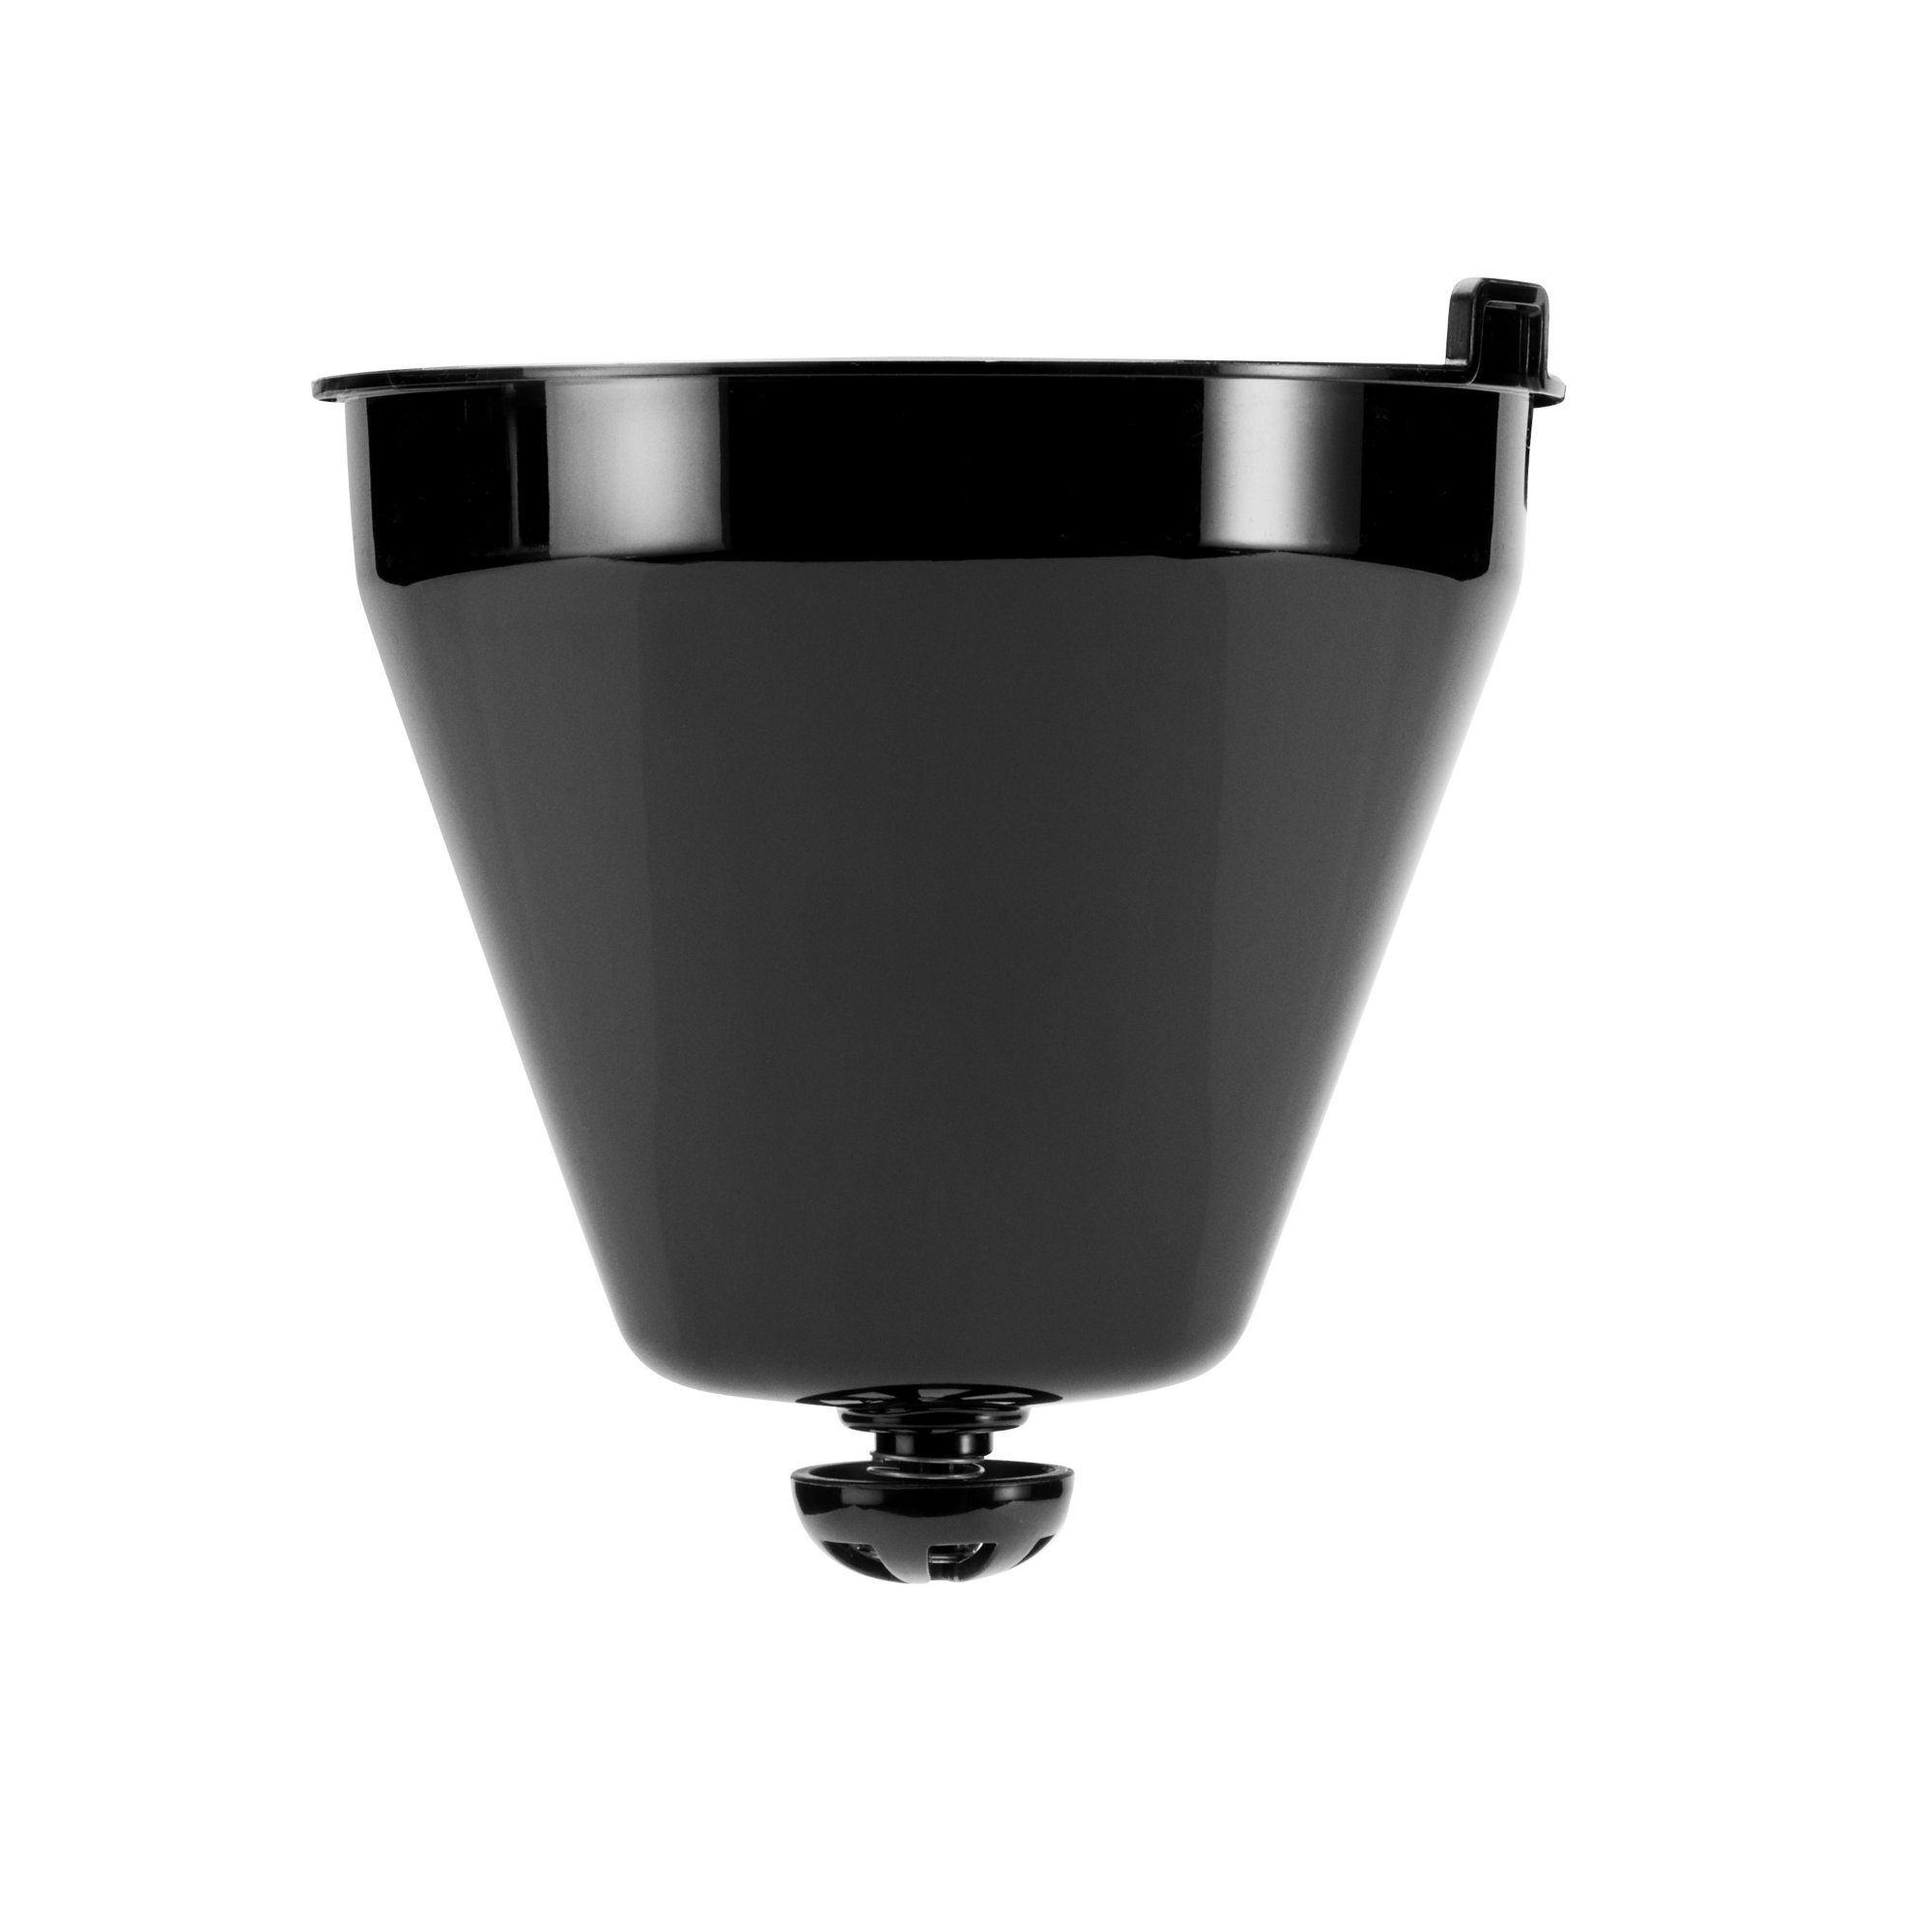 Calphalon Special Brew & Precision Control Coffee Maker Replacement Cone-Style Filter Basket